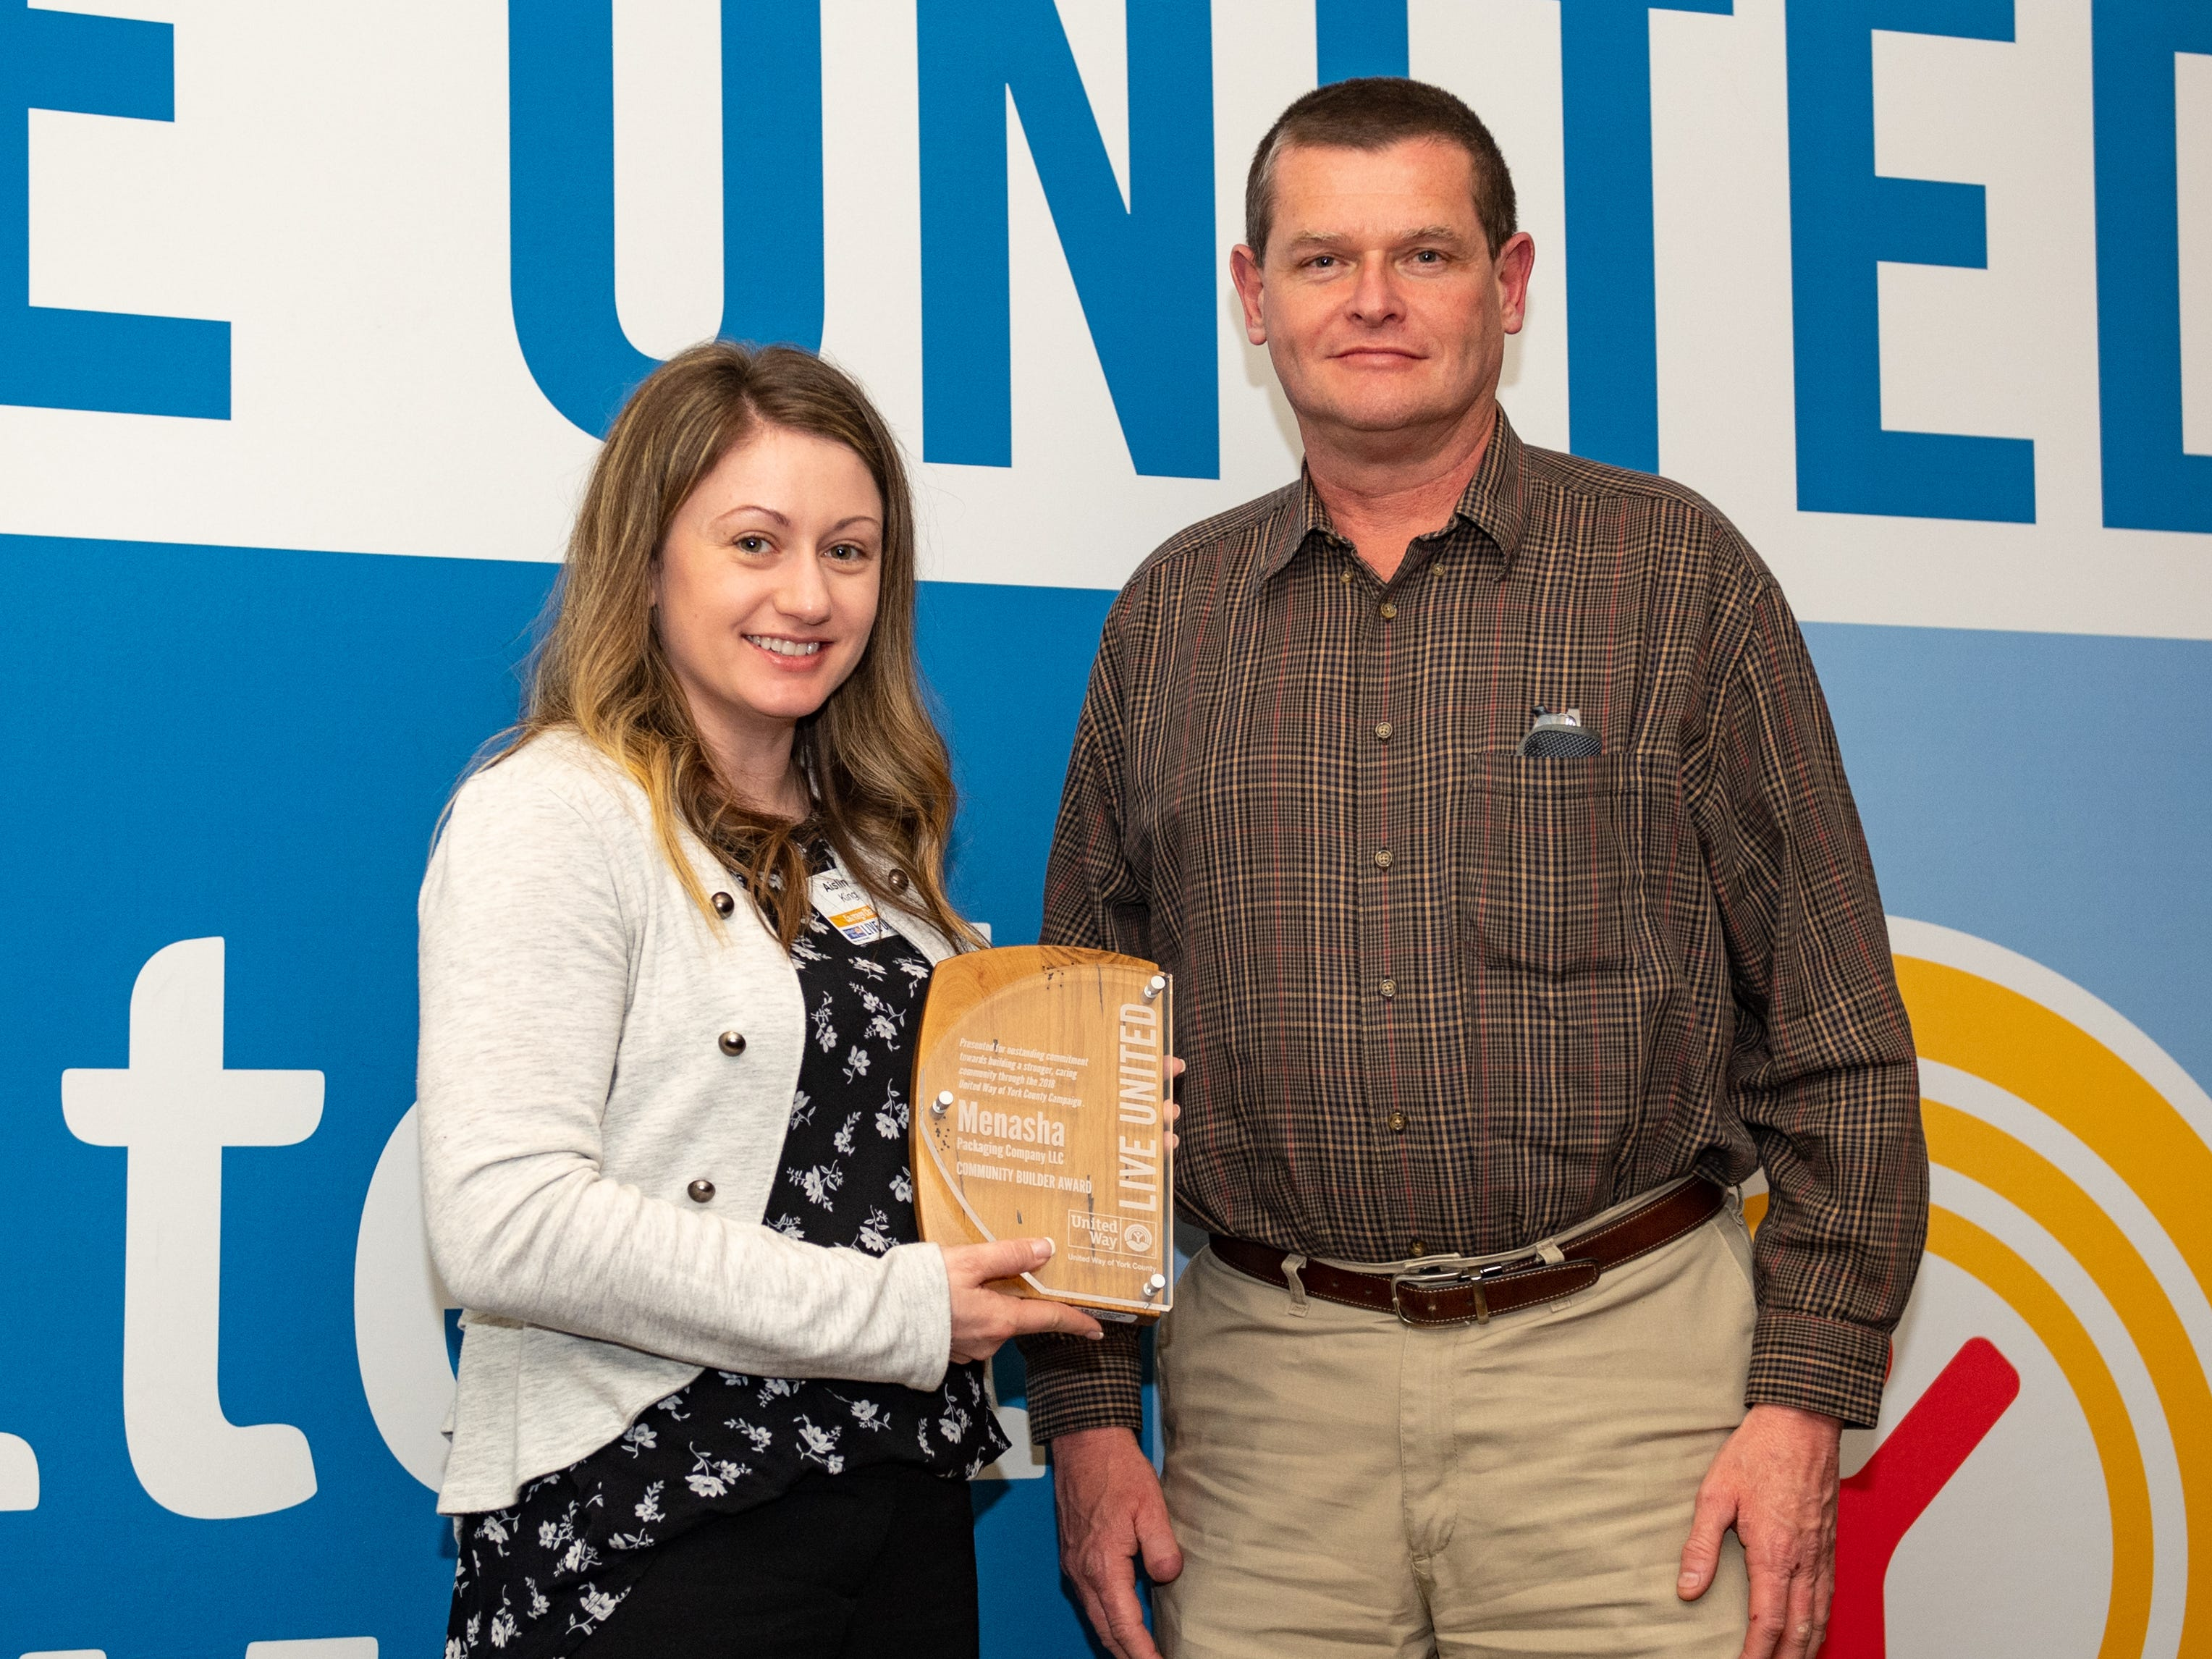 Representatives of Menasha Packaging Company LLC pose with their Community Builder Award during the 2018 United Way Campaign Celebration, February 7, 2019.